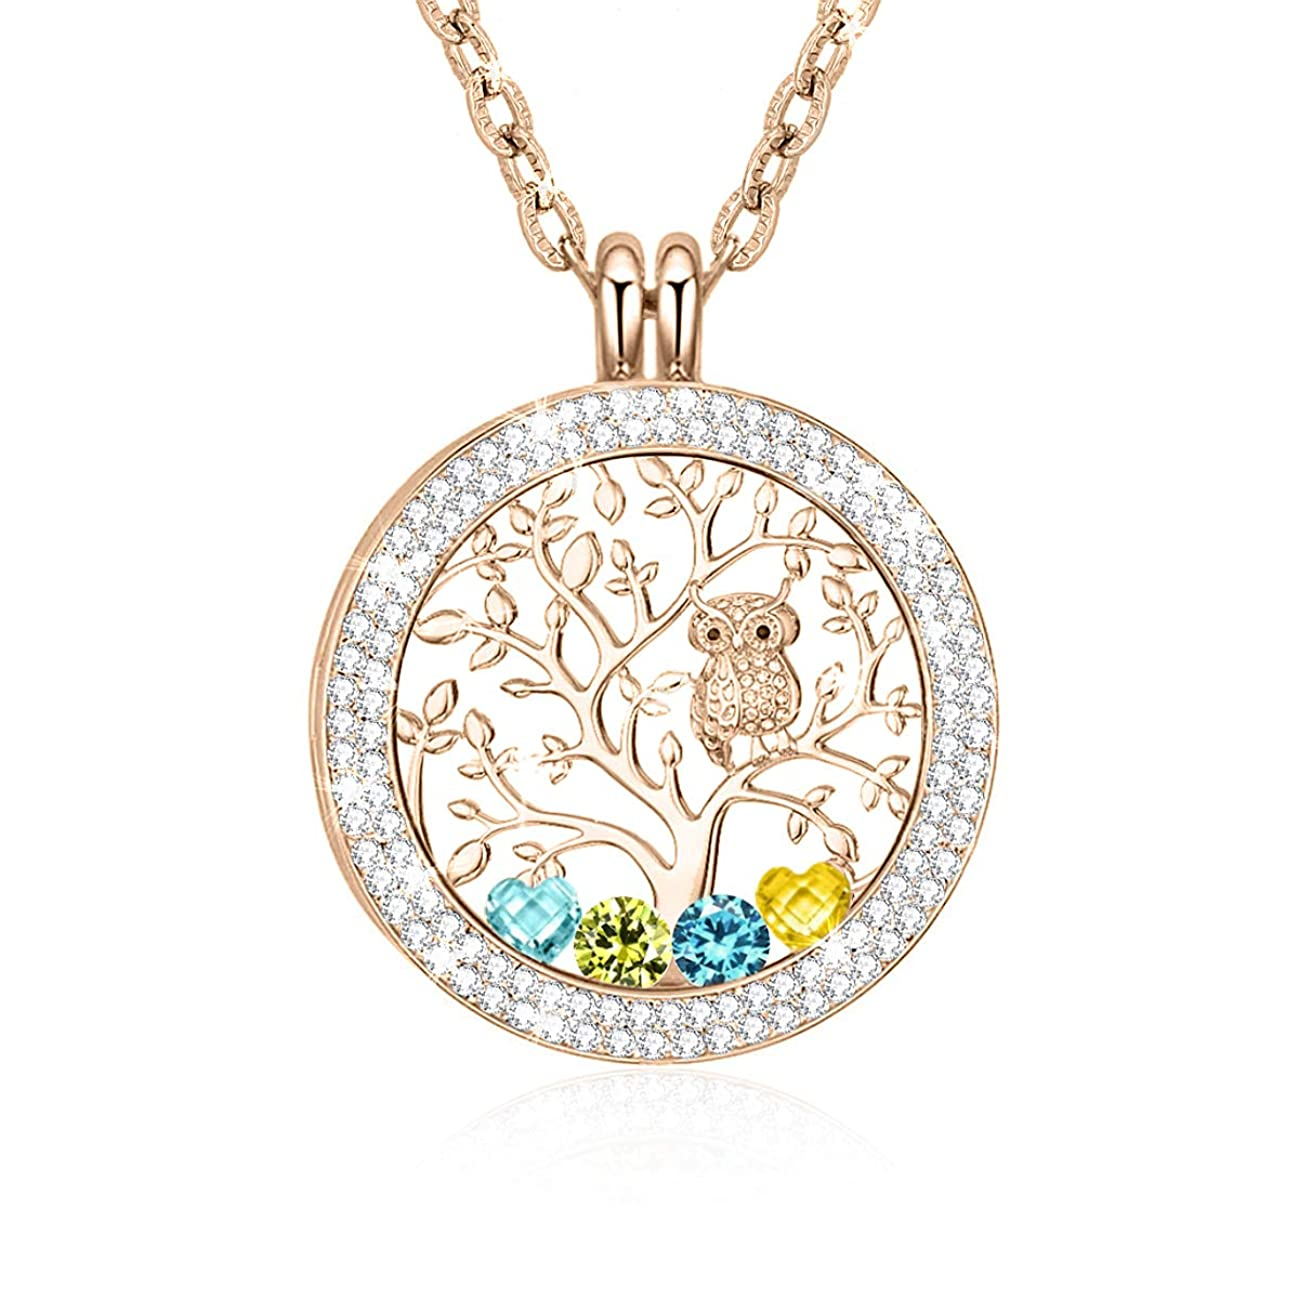 CLORIS TAUTOU Family Tree of Life Floating Charms Memory Locket Pendant Necklace with Created Birthstone Necklace